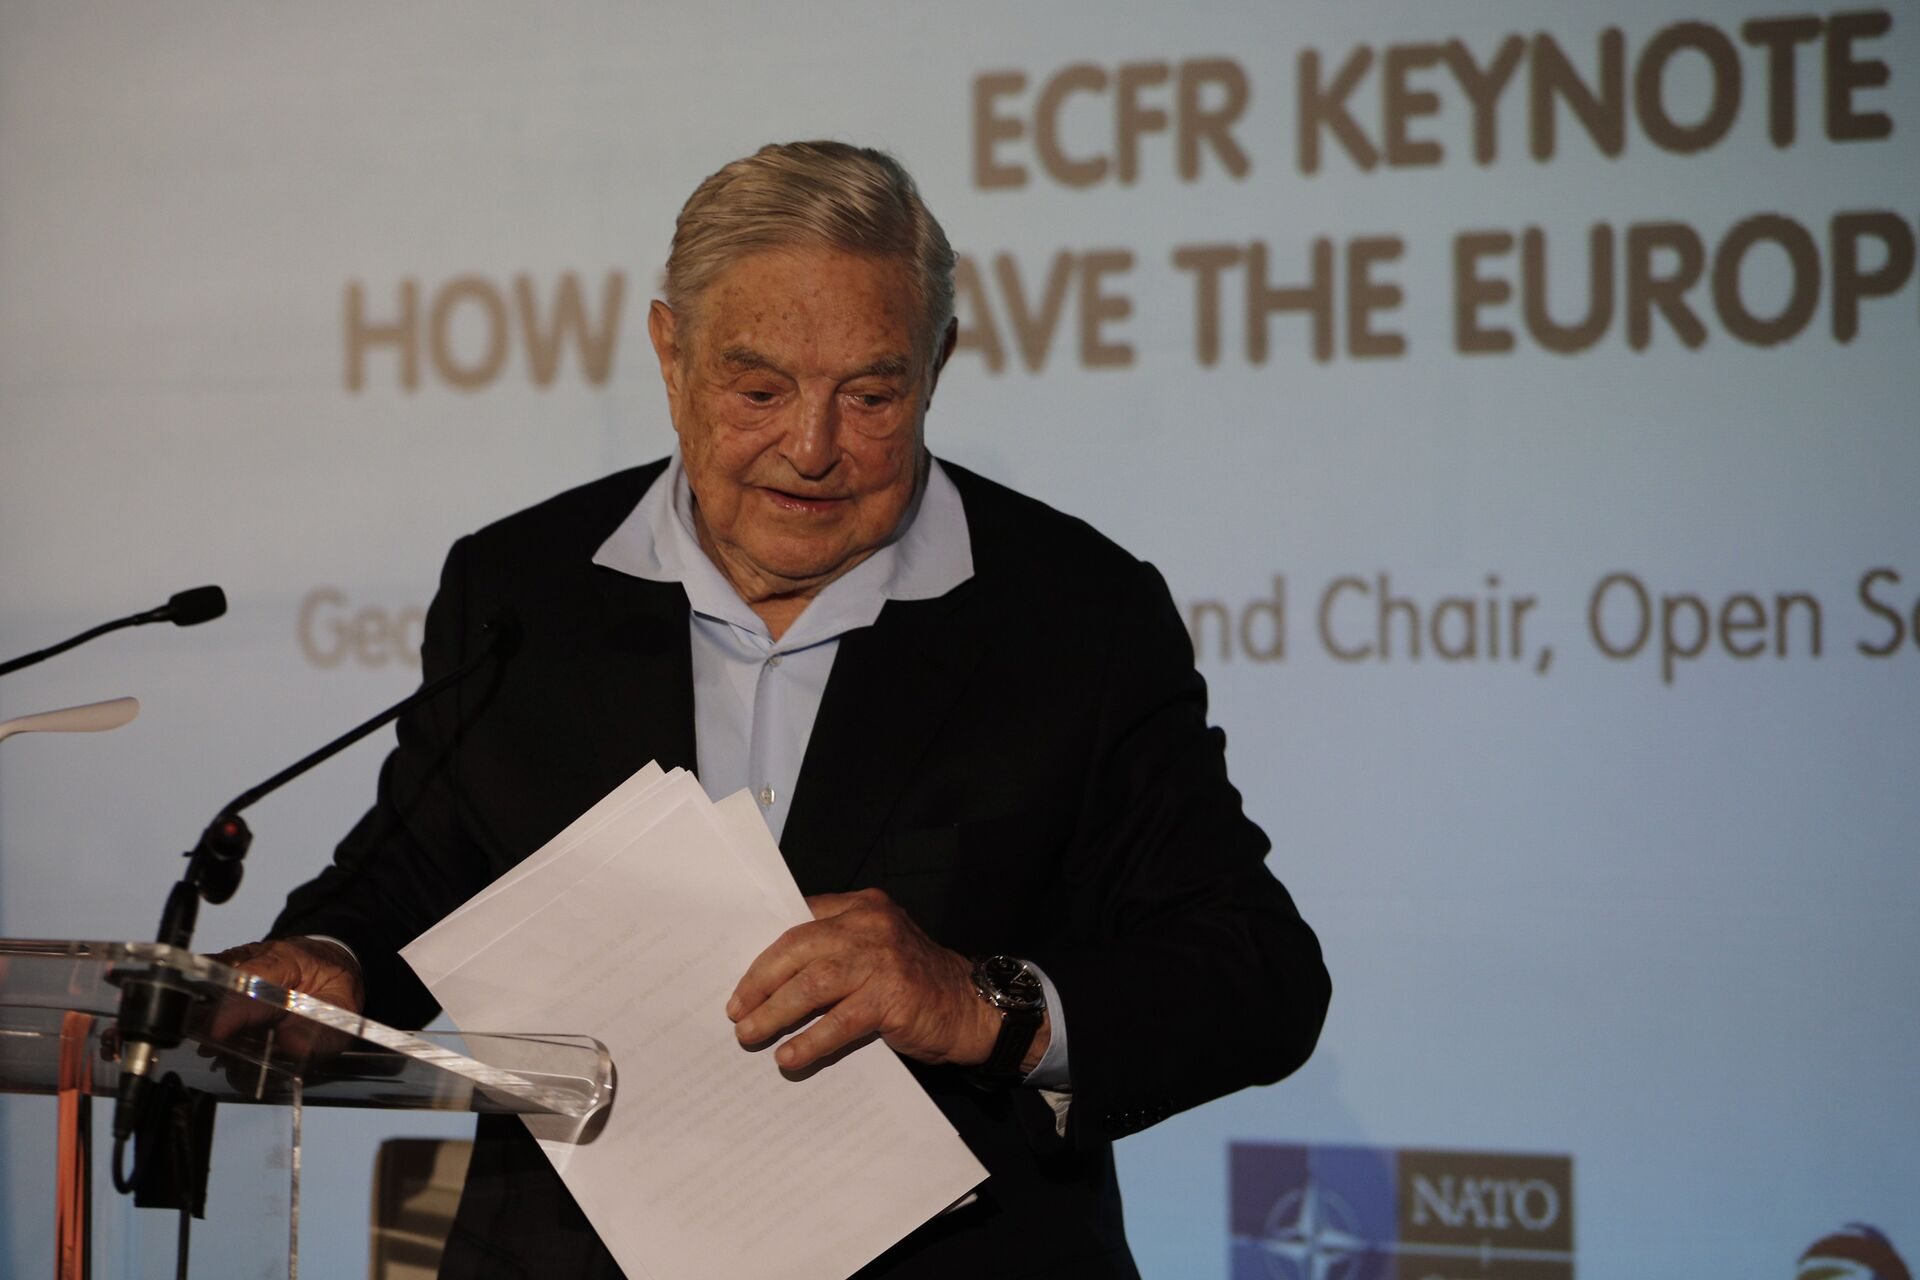 George Soros, Founder and Chairman of the Open Society Foundations leaves after his speech entitled How to save the European Union as he attends the European Council On Foreign Relations Annual Council Meeting in Paris, Tuesday, May 29, 2018 - Sputnik International, 1920, 06.10.2021